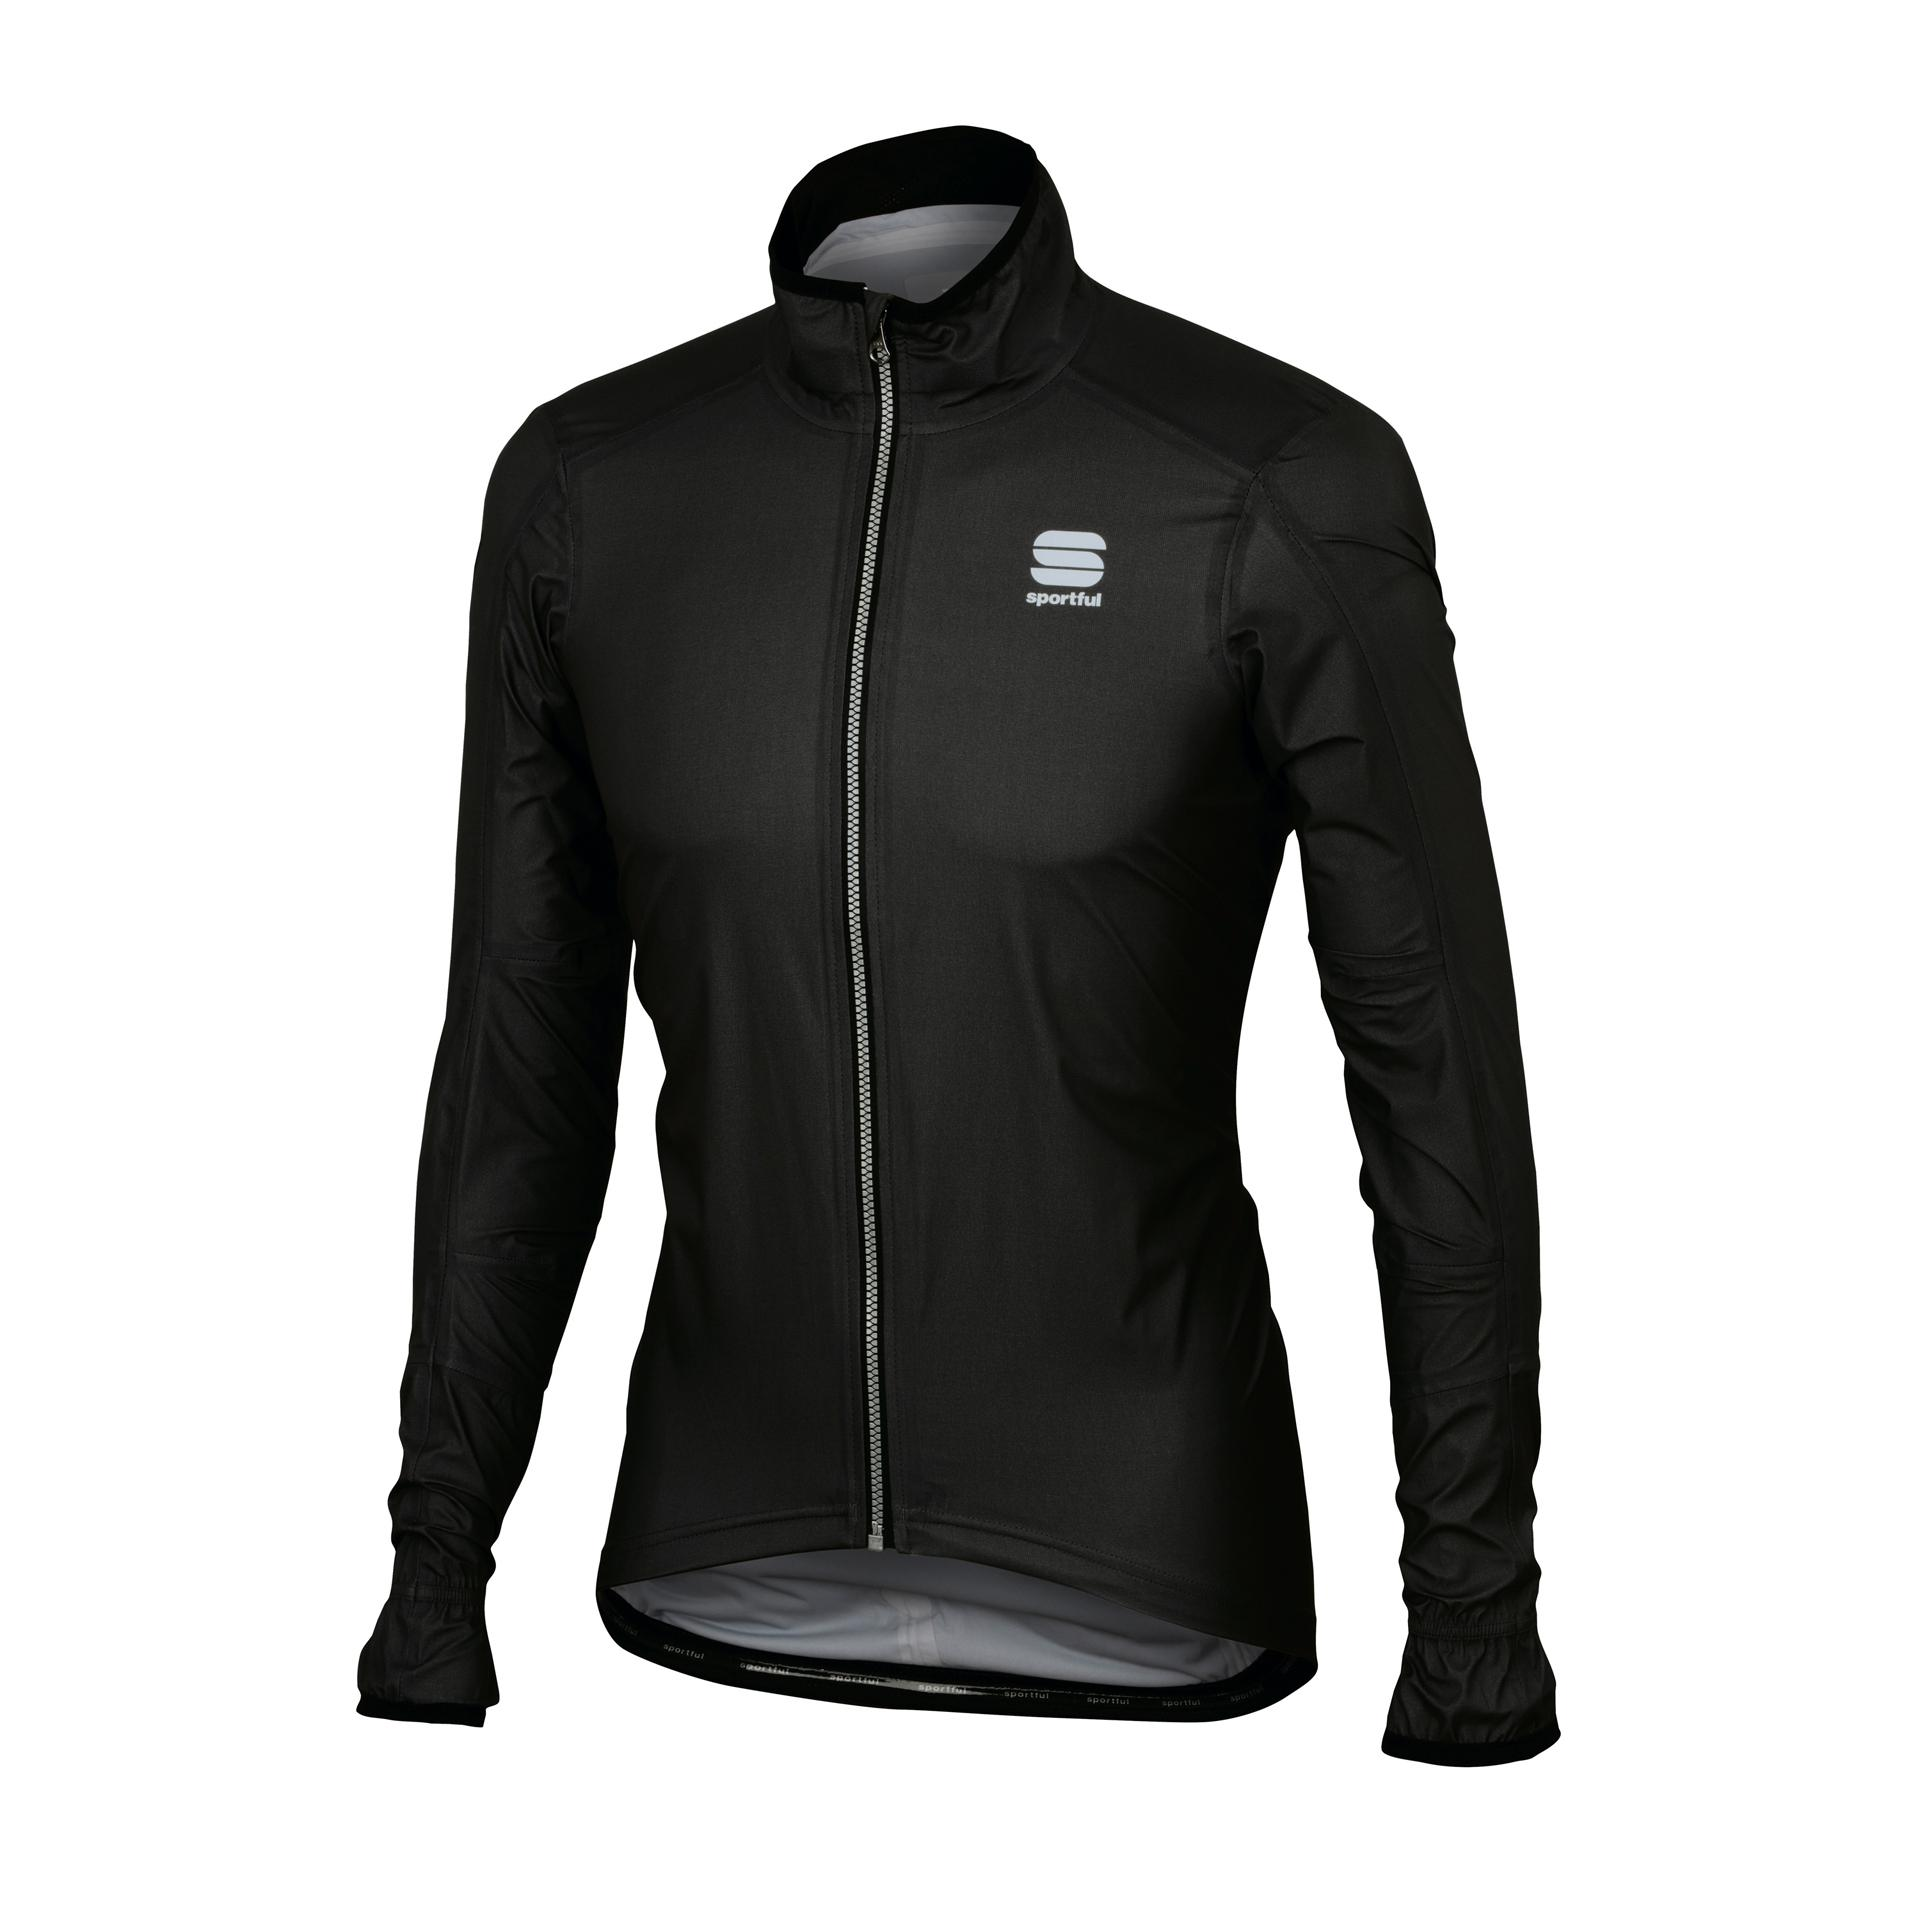 Sportful Fietsjack Heren Zwart  / SF Stelvio  Jacket-Black